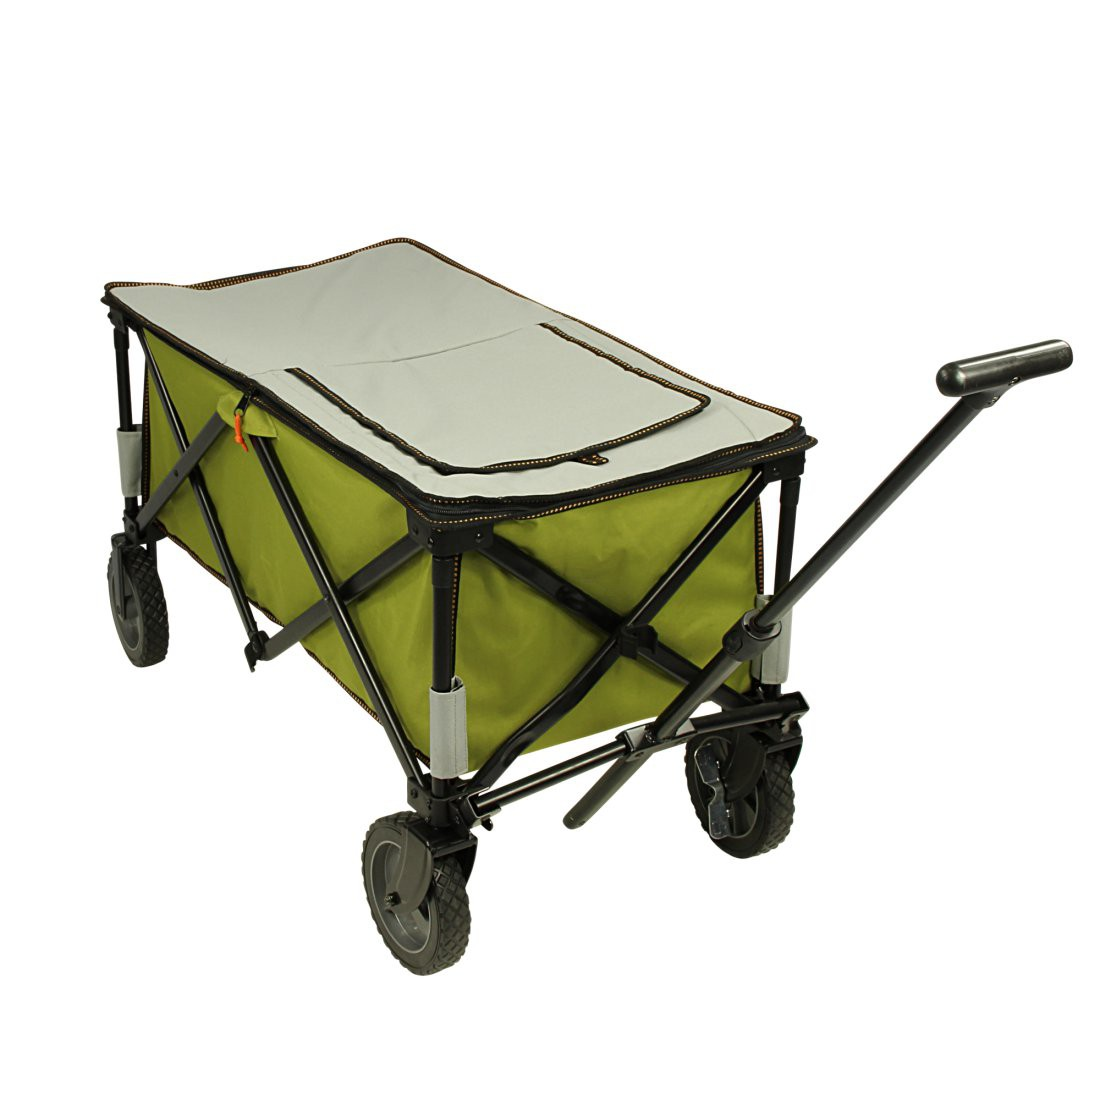 Buy 10T Cooler Trolley - foldable hand cart, Beach Cart with cool ...